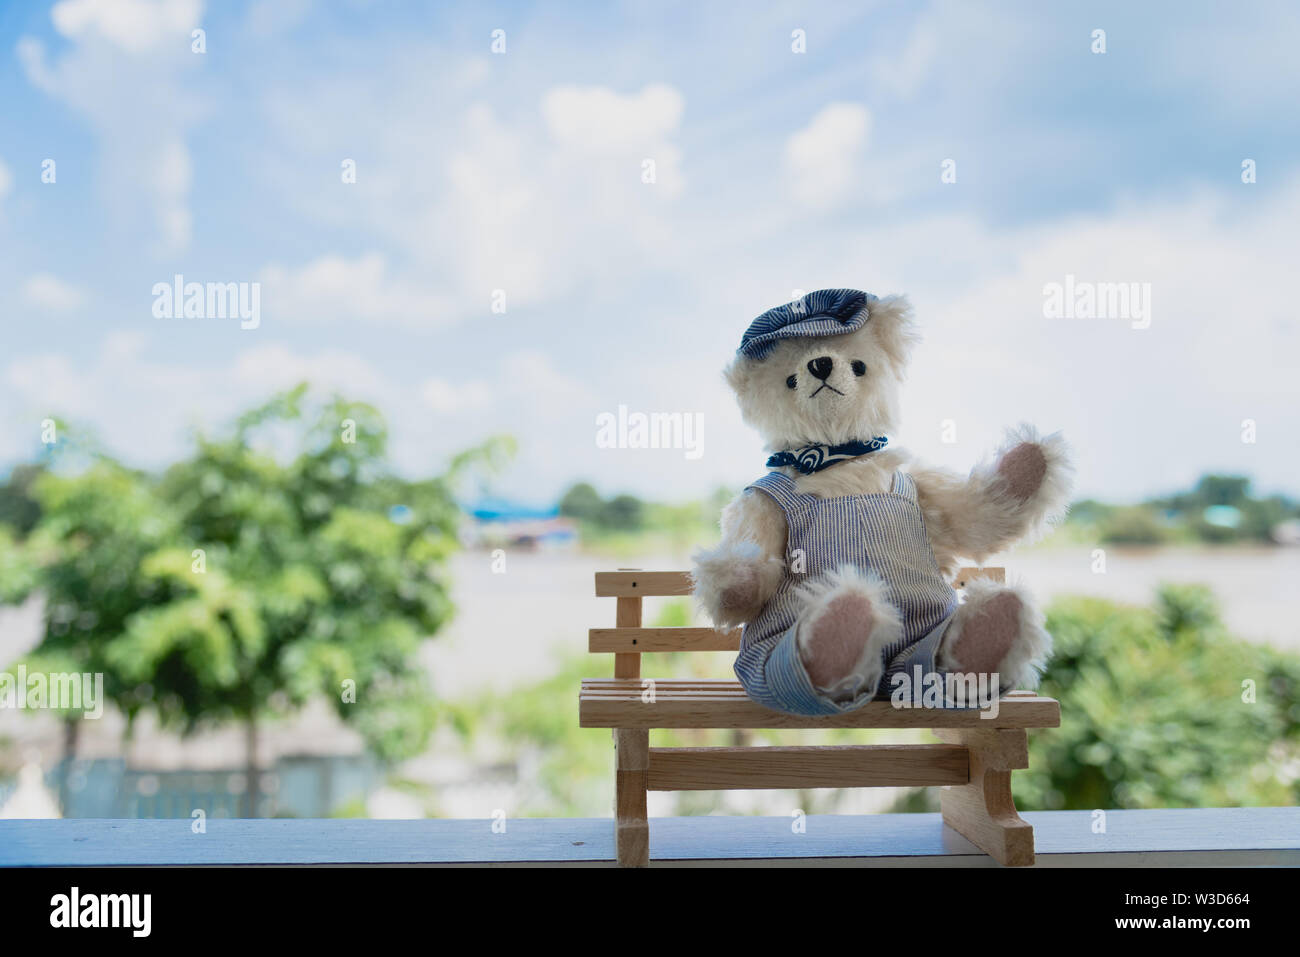 Vibrant outdoor photo of teddy bear sitting on the yard at the park with the white flower and green grasses - Stock Image